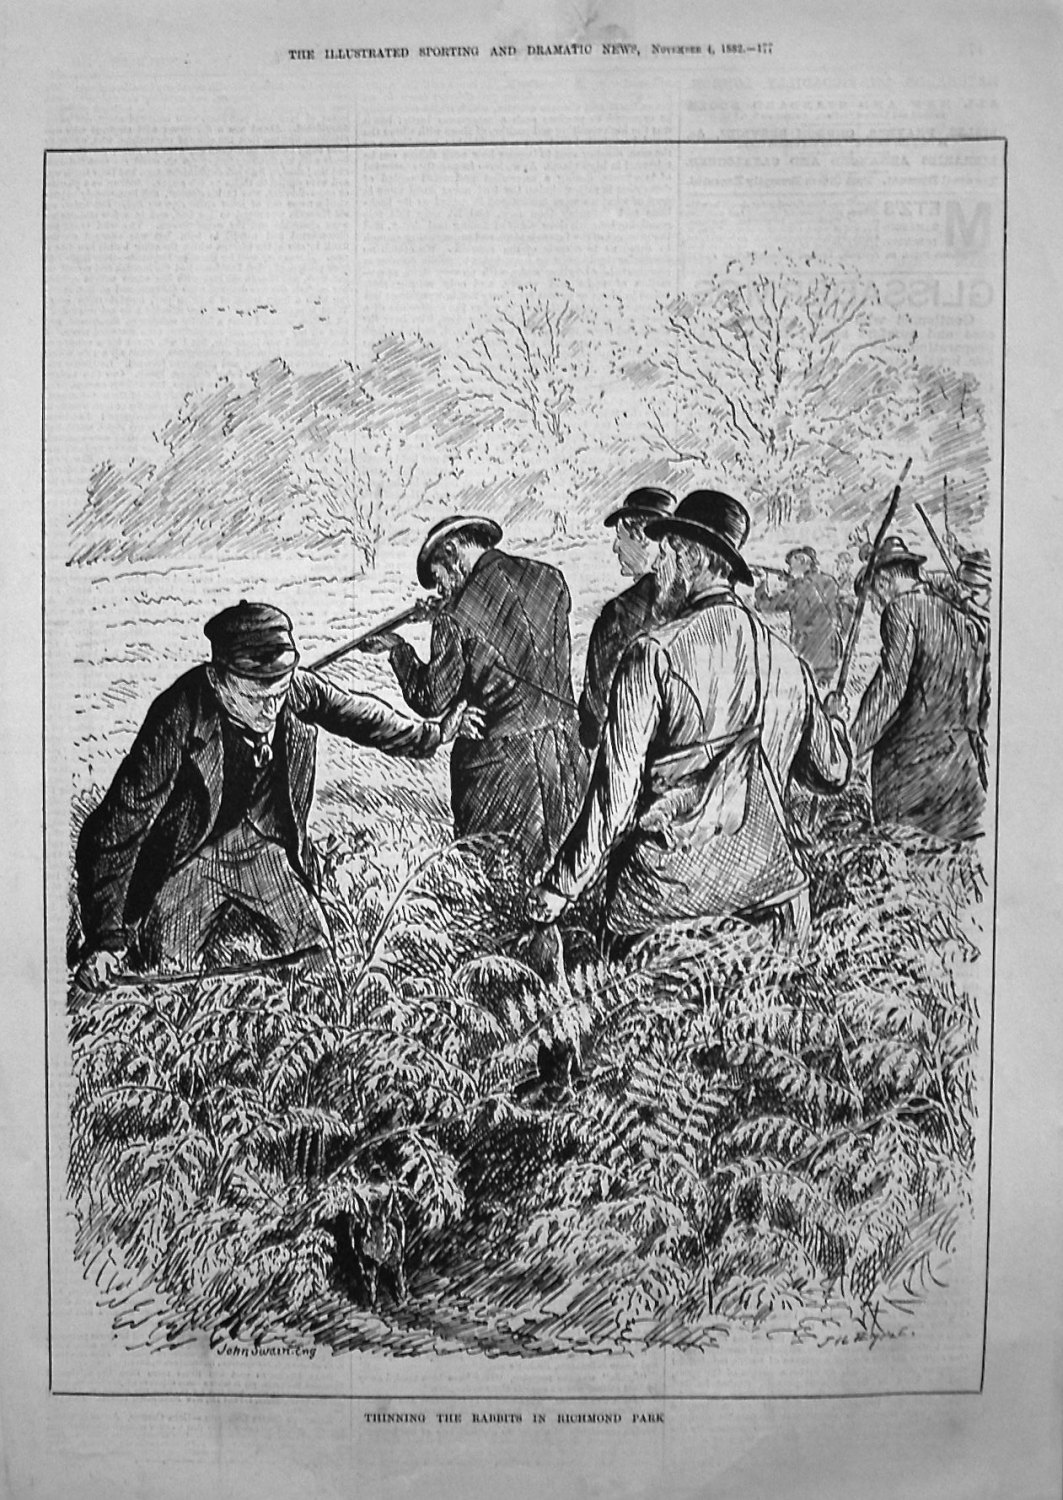 Thinning the Rabbits in Richmond Park. 1882